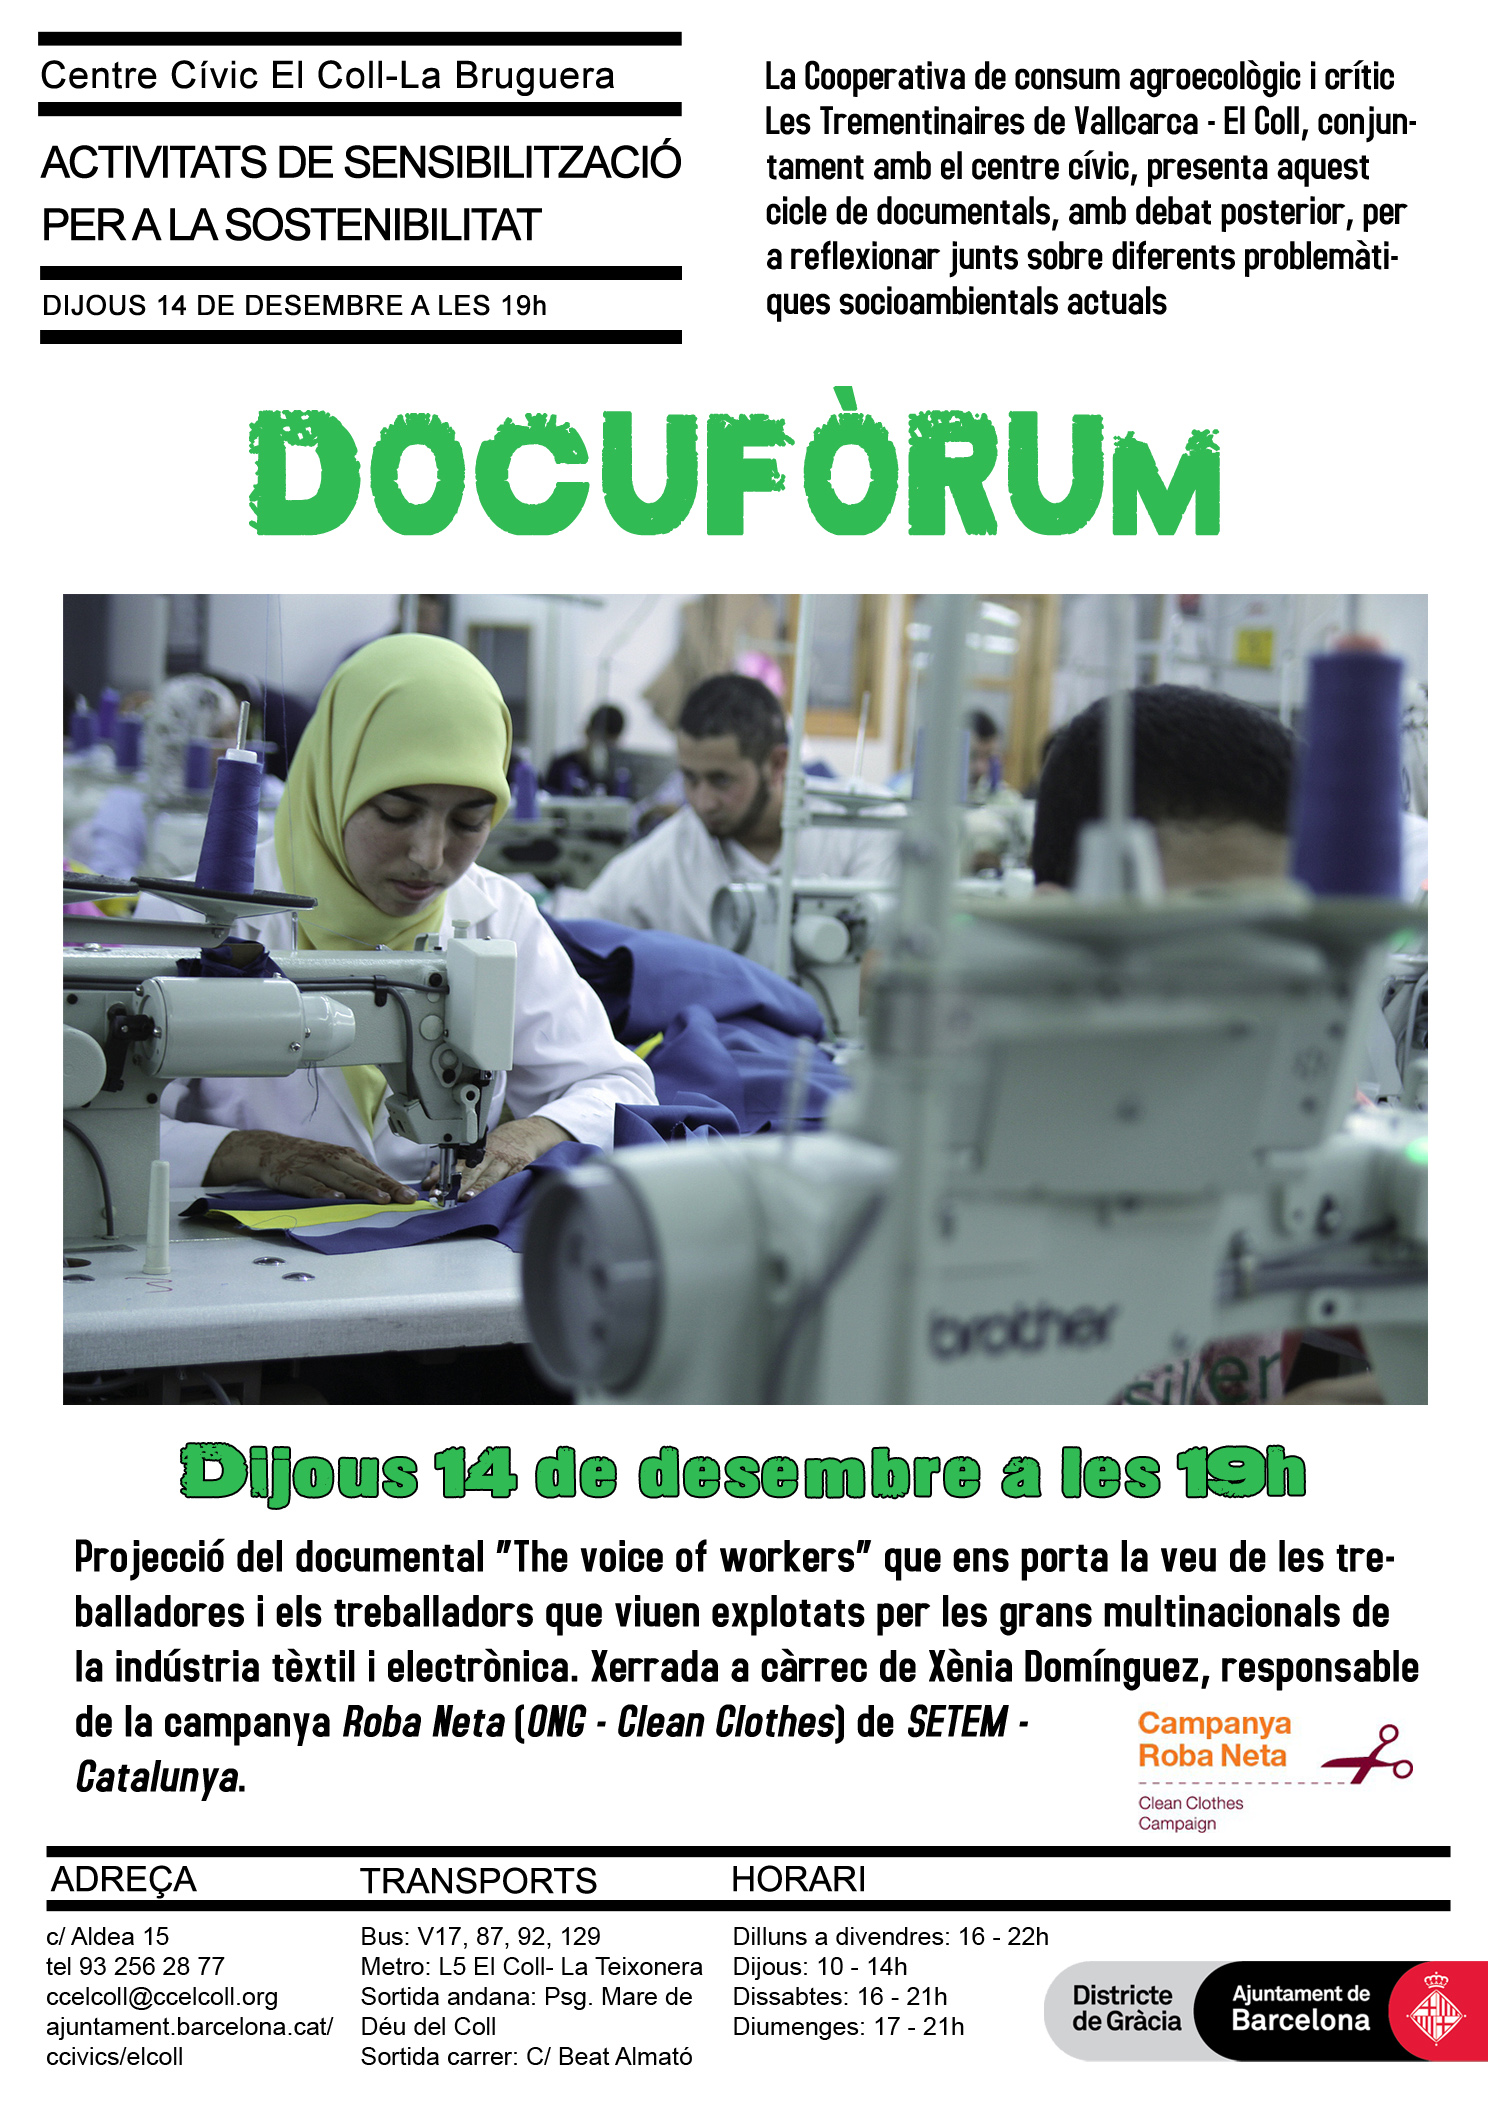 Docufòrum 'The voice of workers'